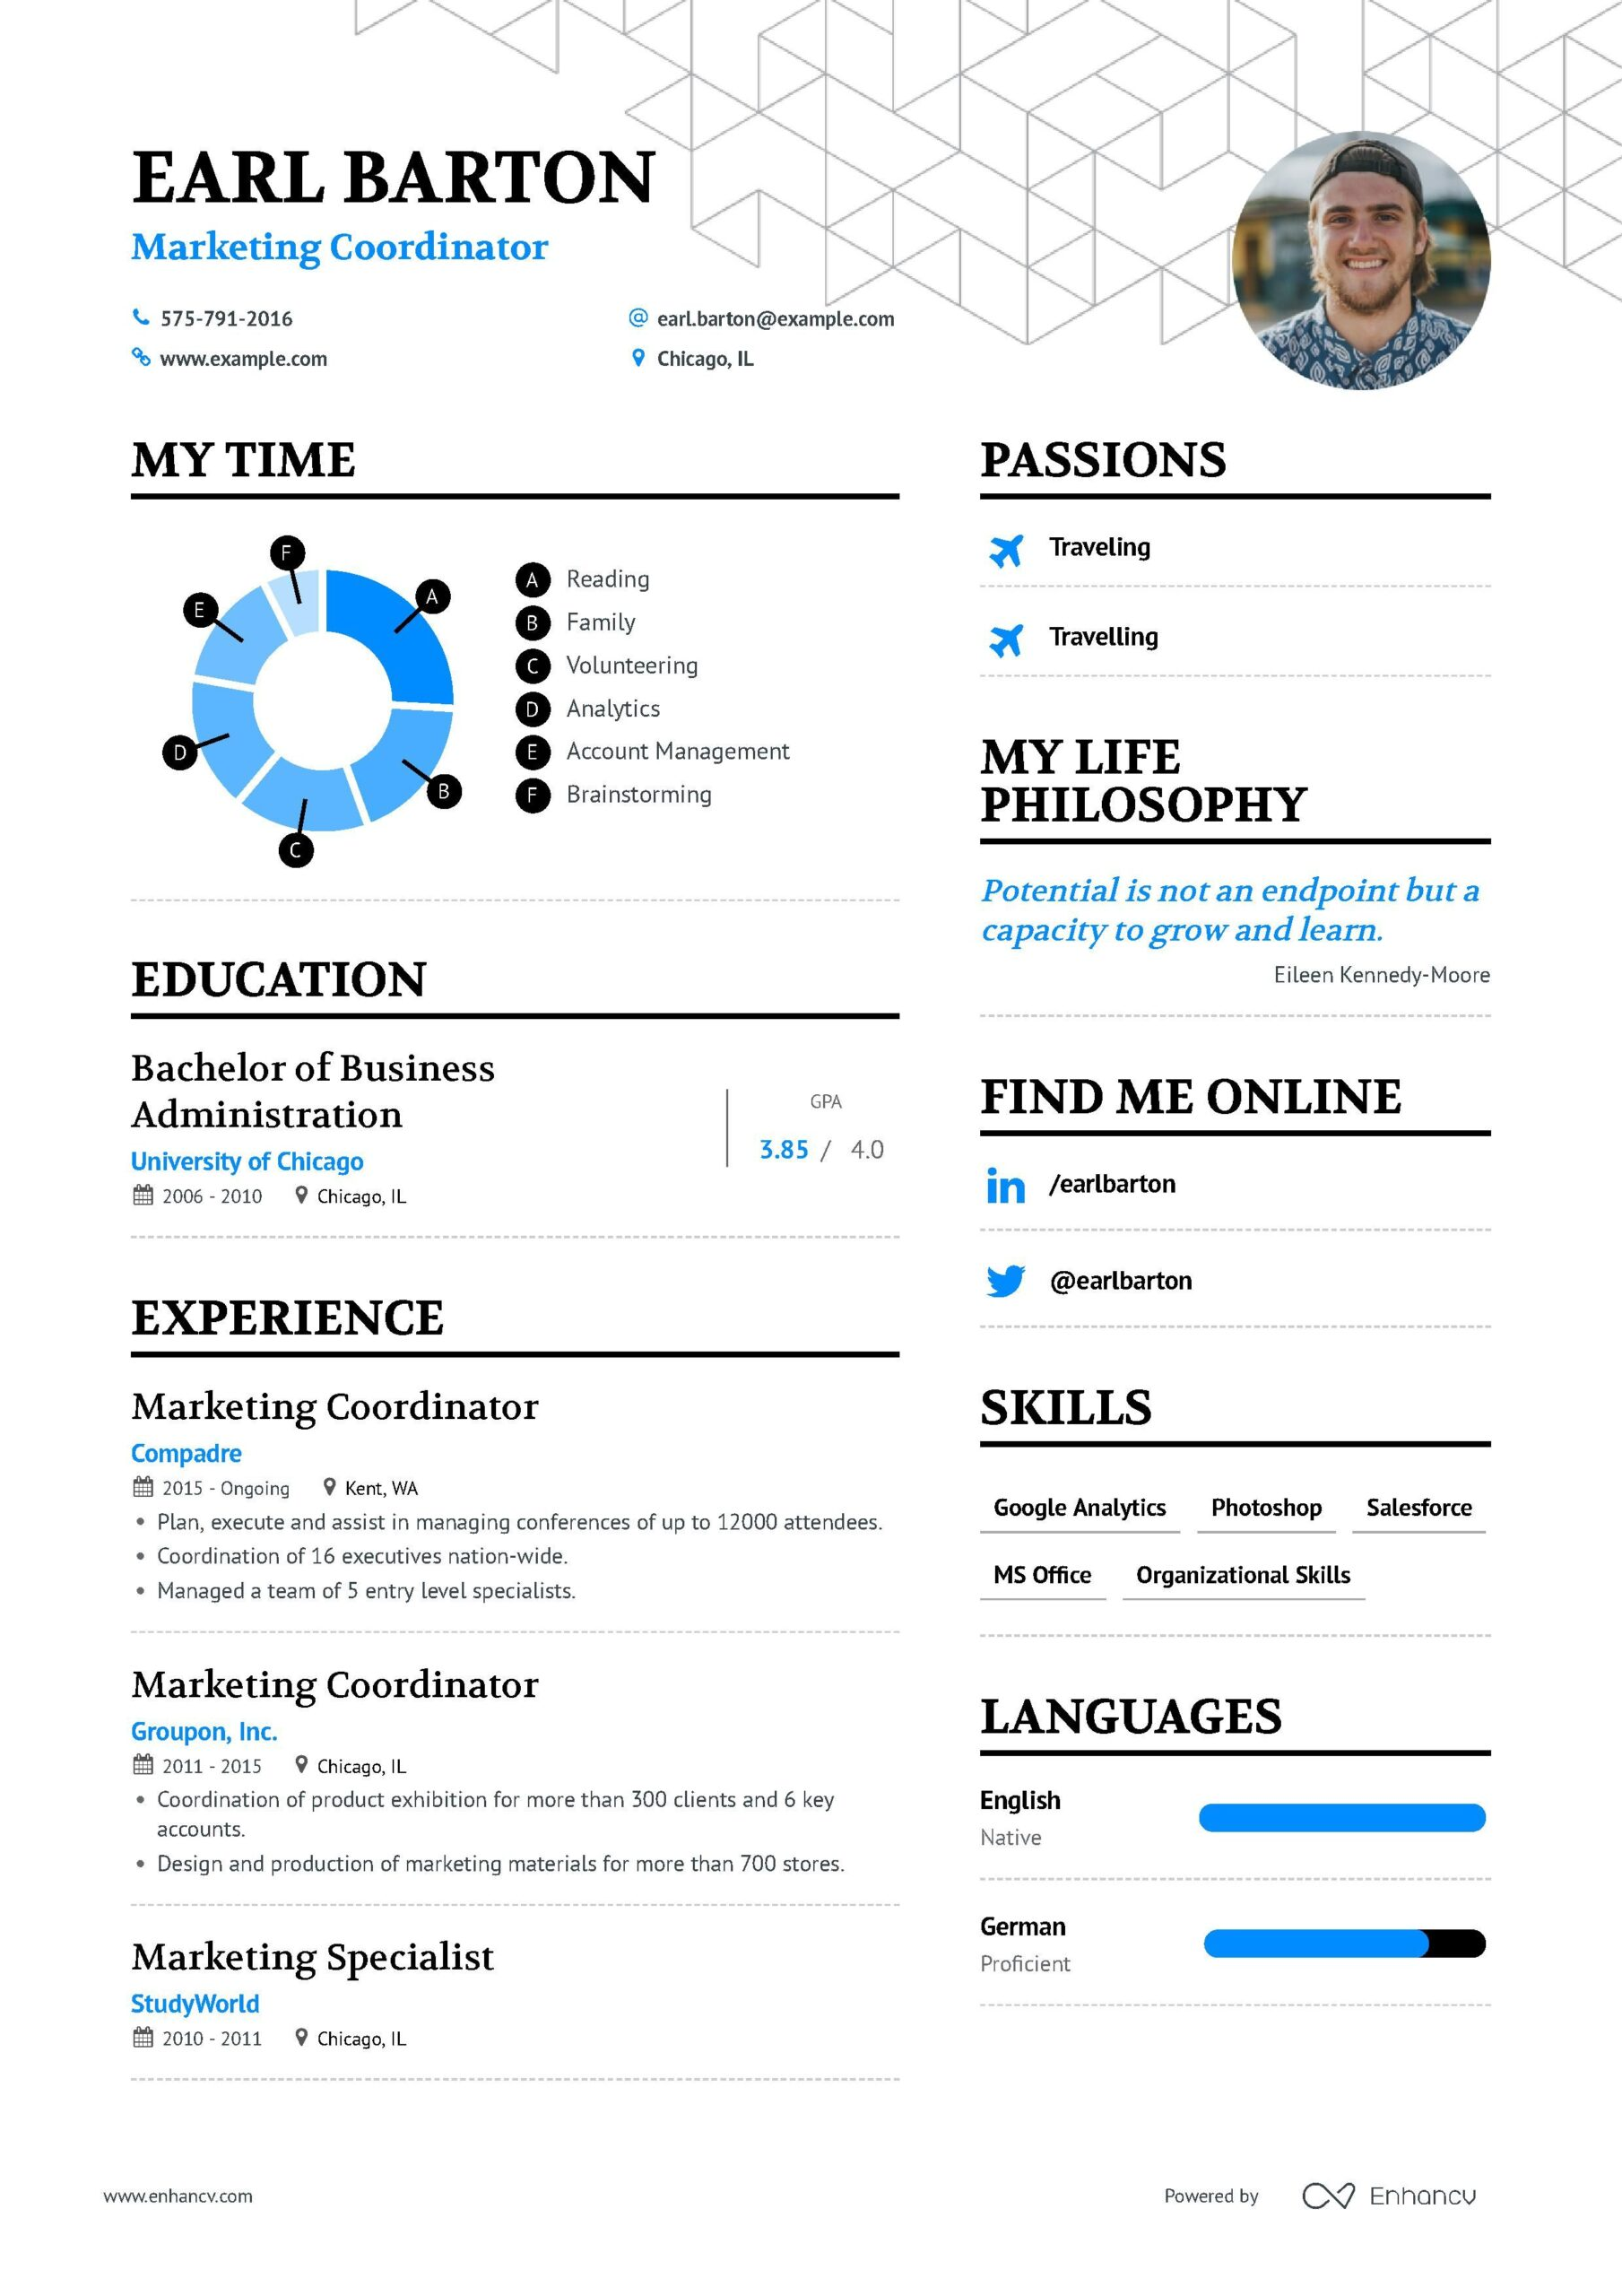 marketing coordinator resume example and guide for examples bms summary unemployed grad Resume Marketing Coordinator Resume